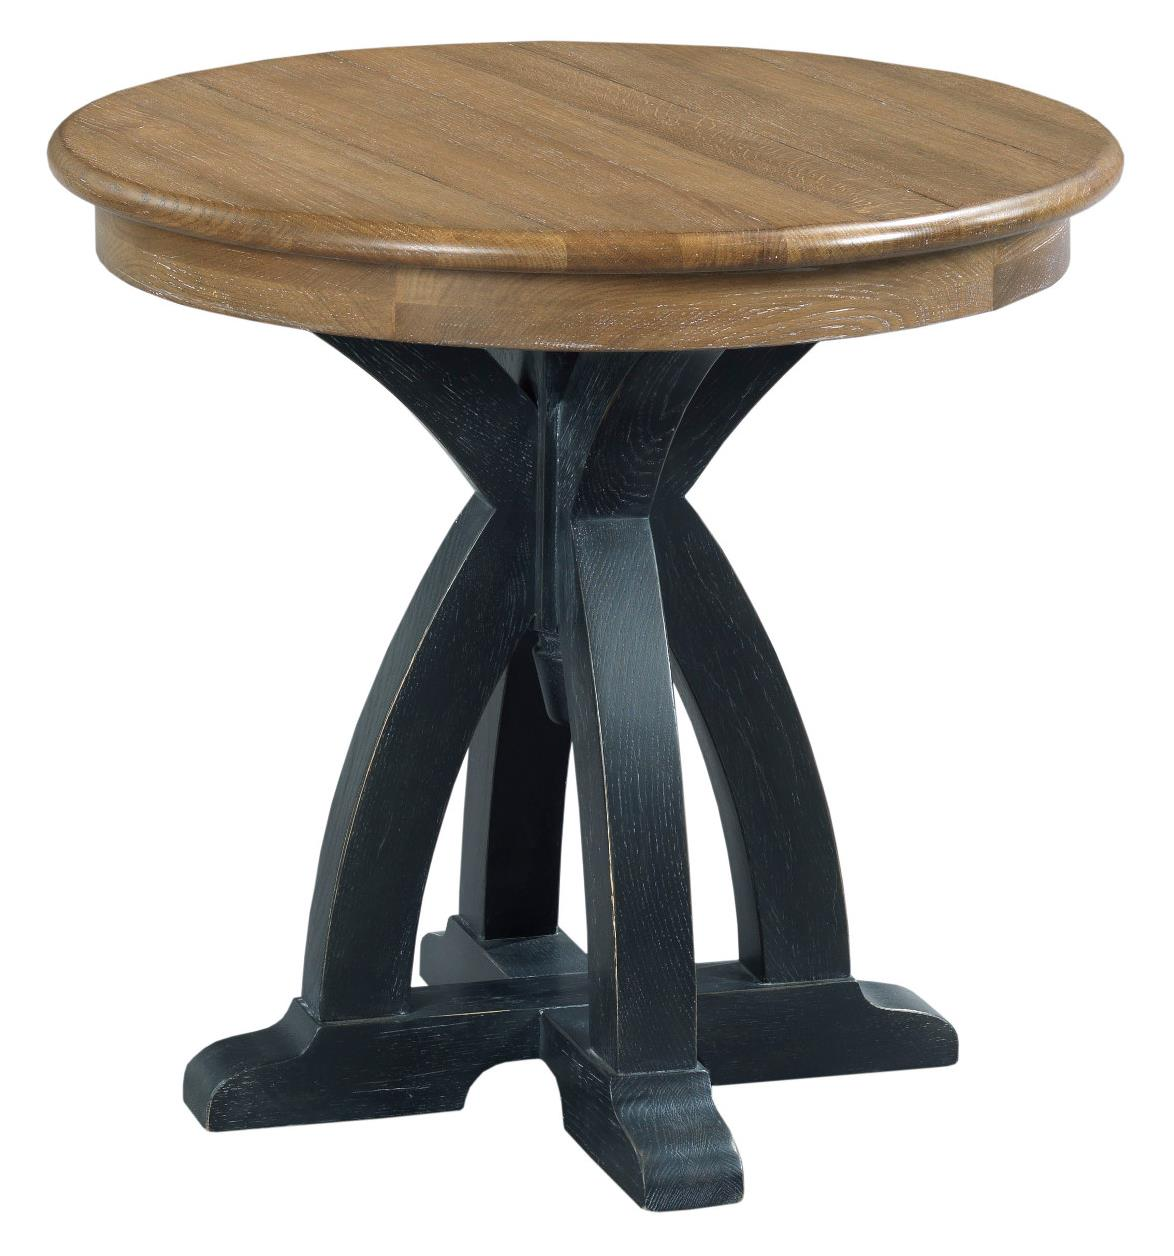 Kincaid Furniture Stone Ridge Round Wood End Table - Item Number: 72-021